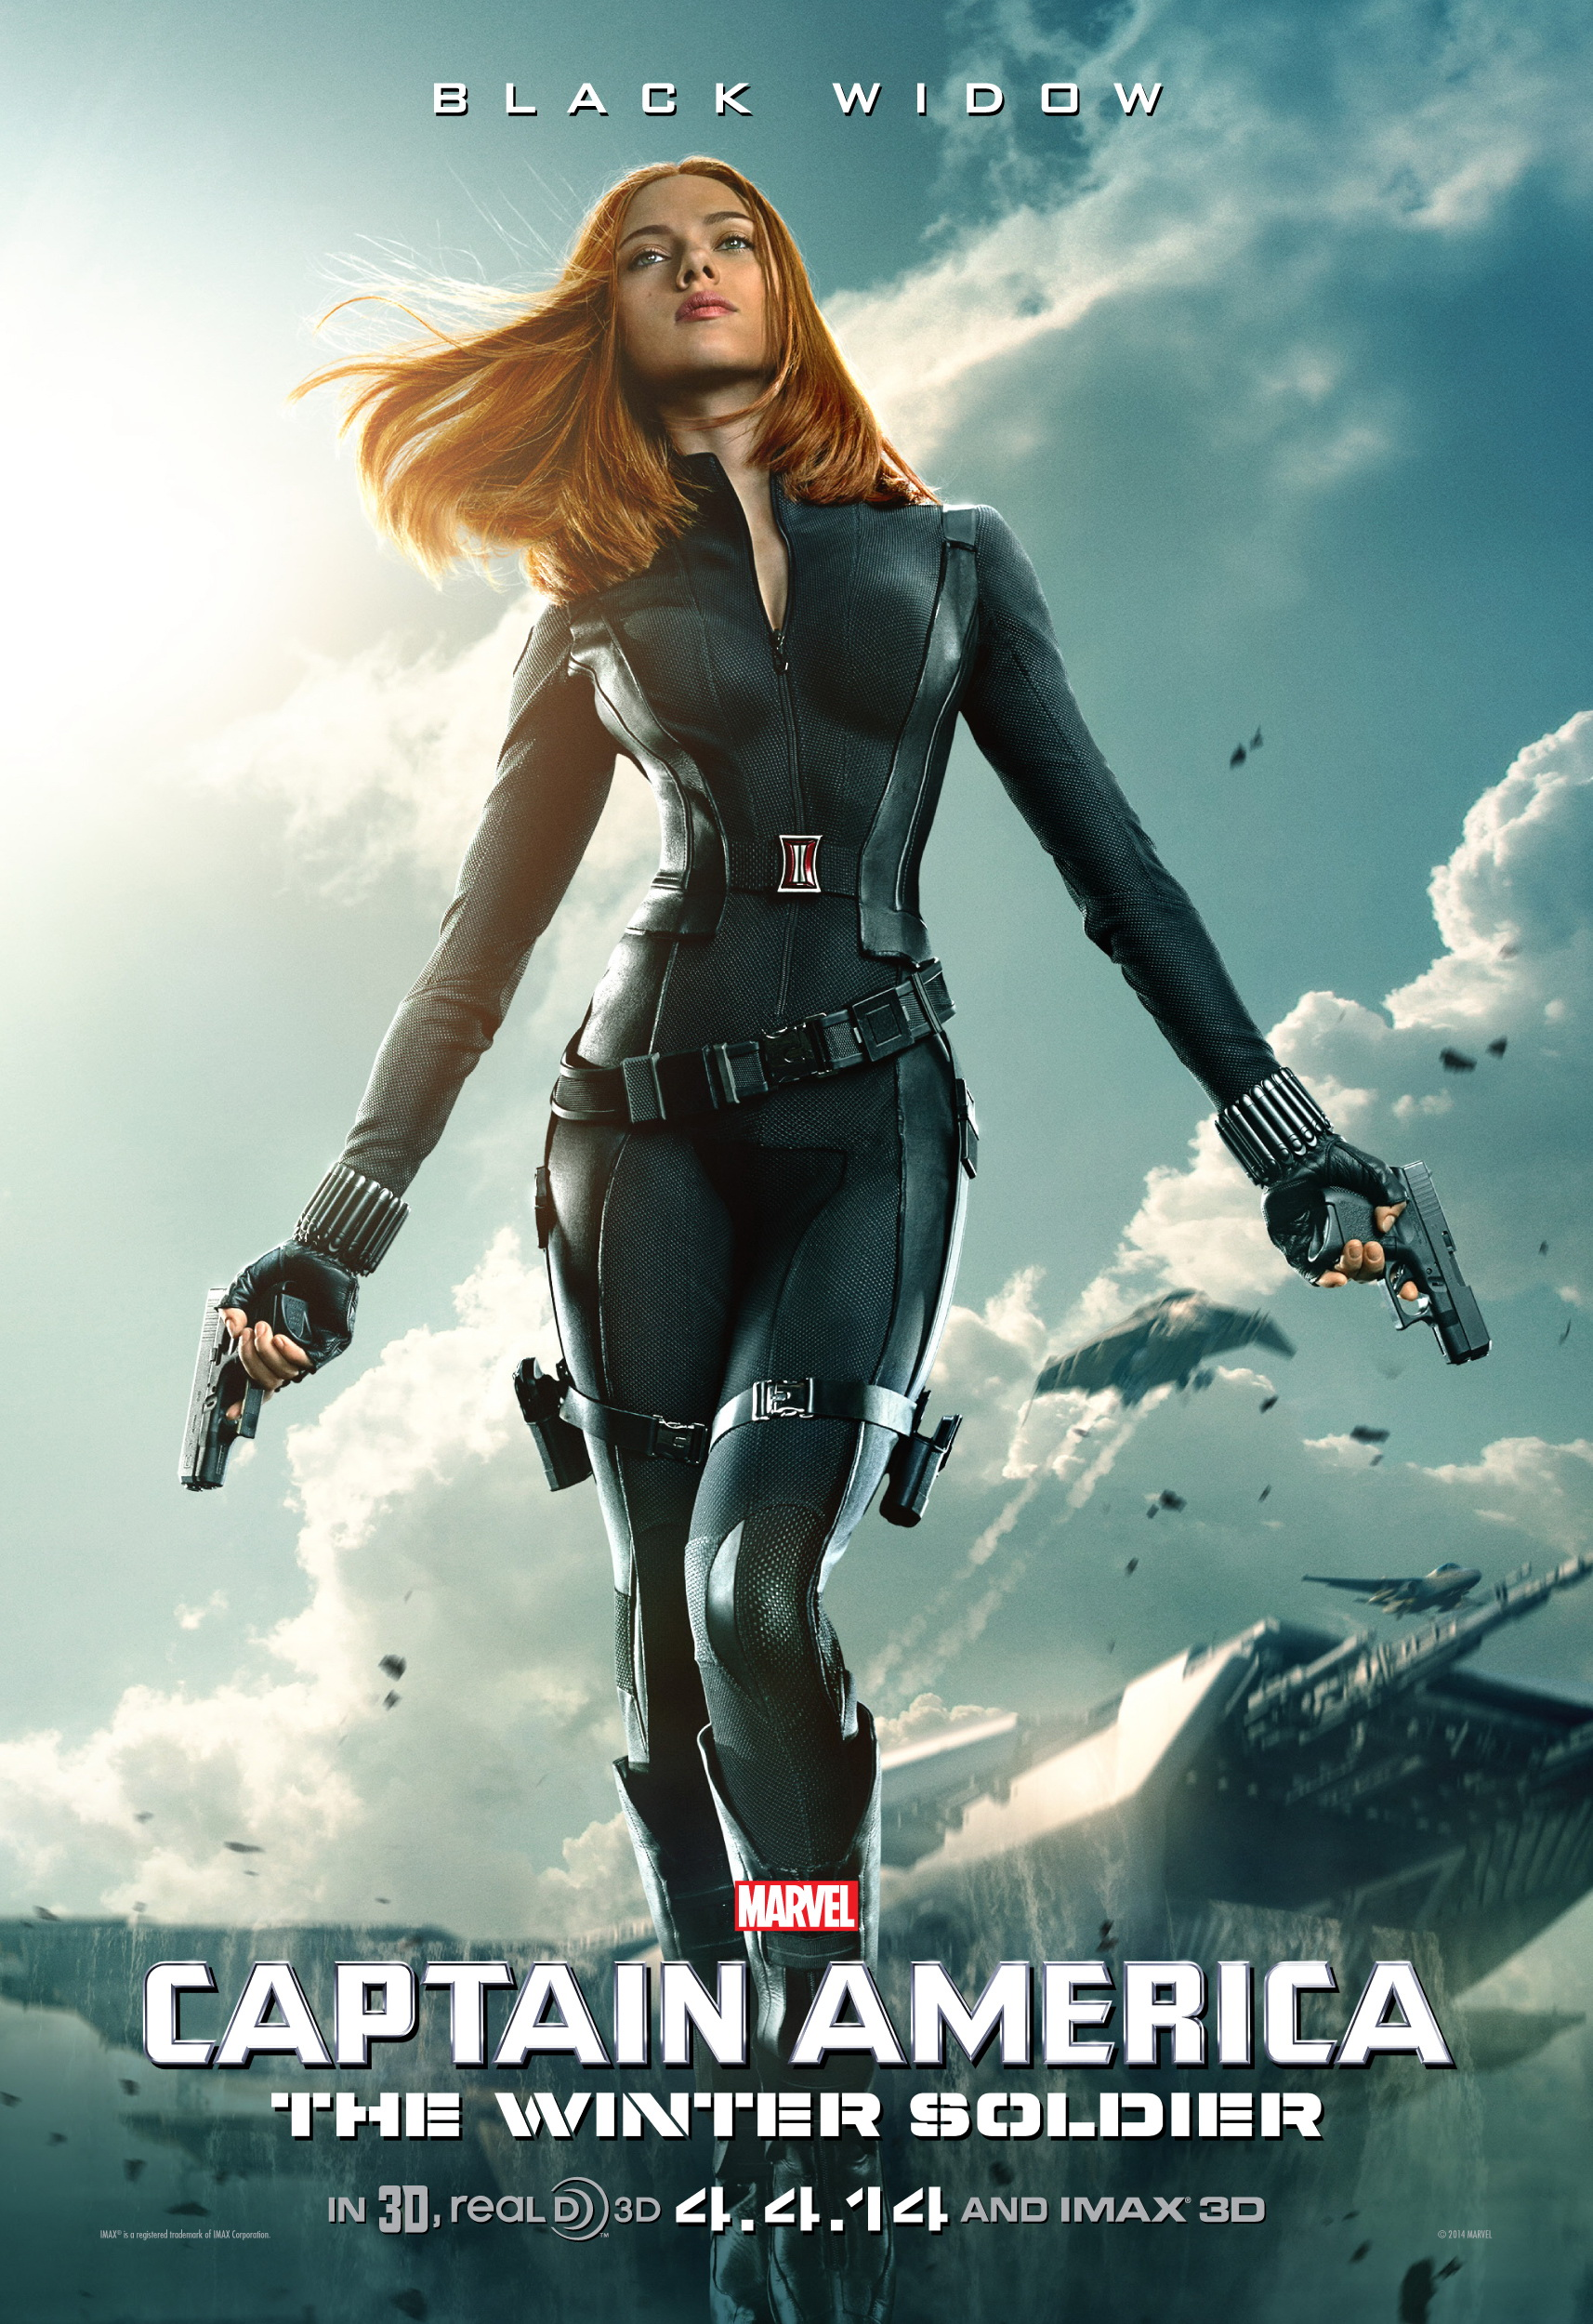 Image - Black Widow poster.jpg | Marvel Cinematic Universe Wiki ...